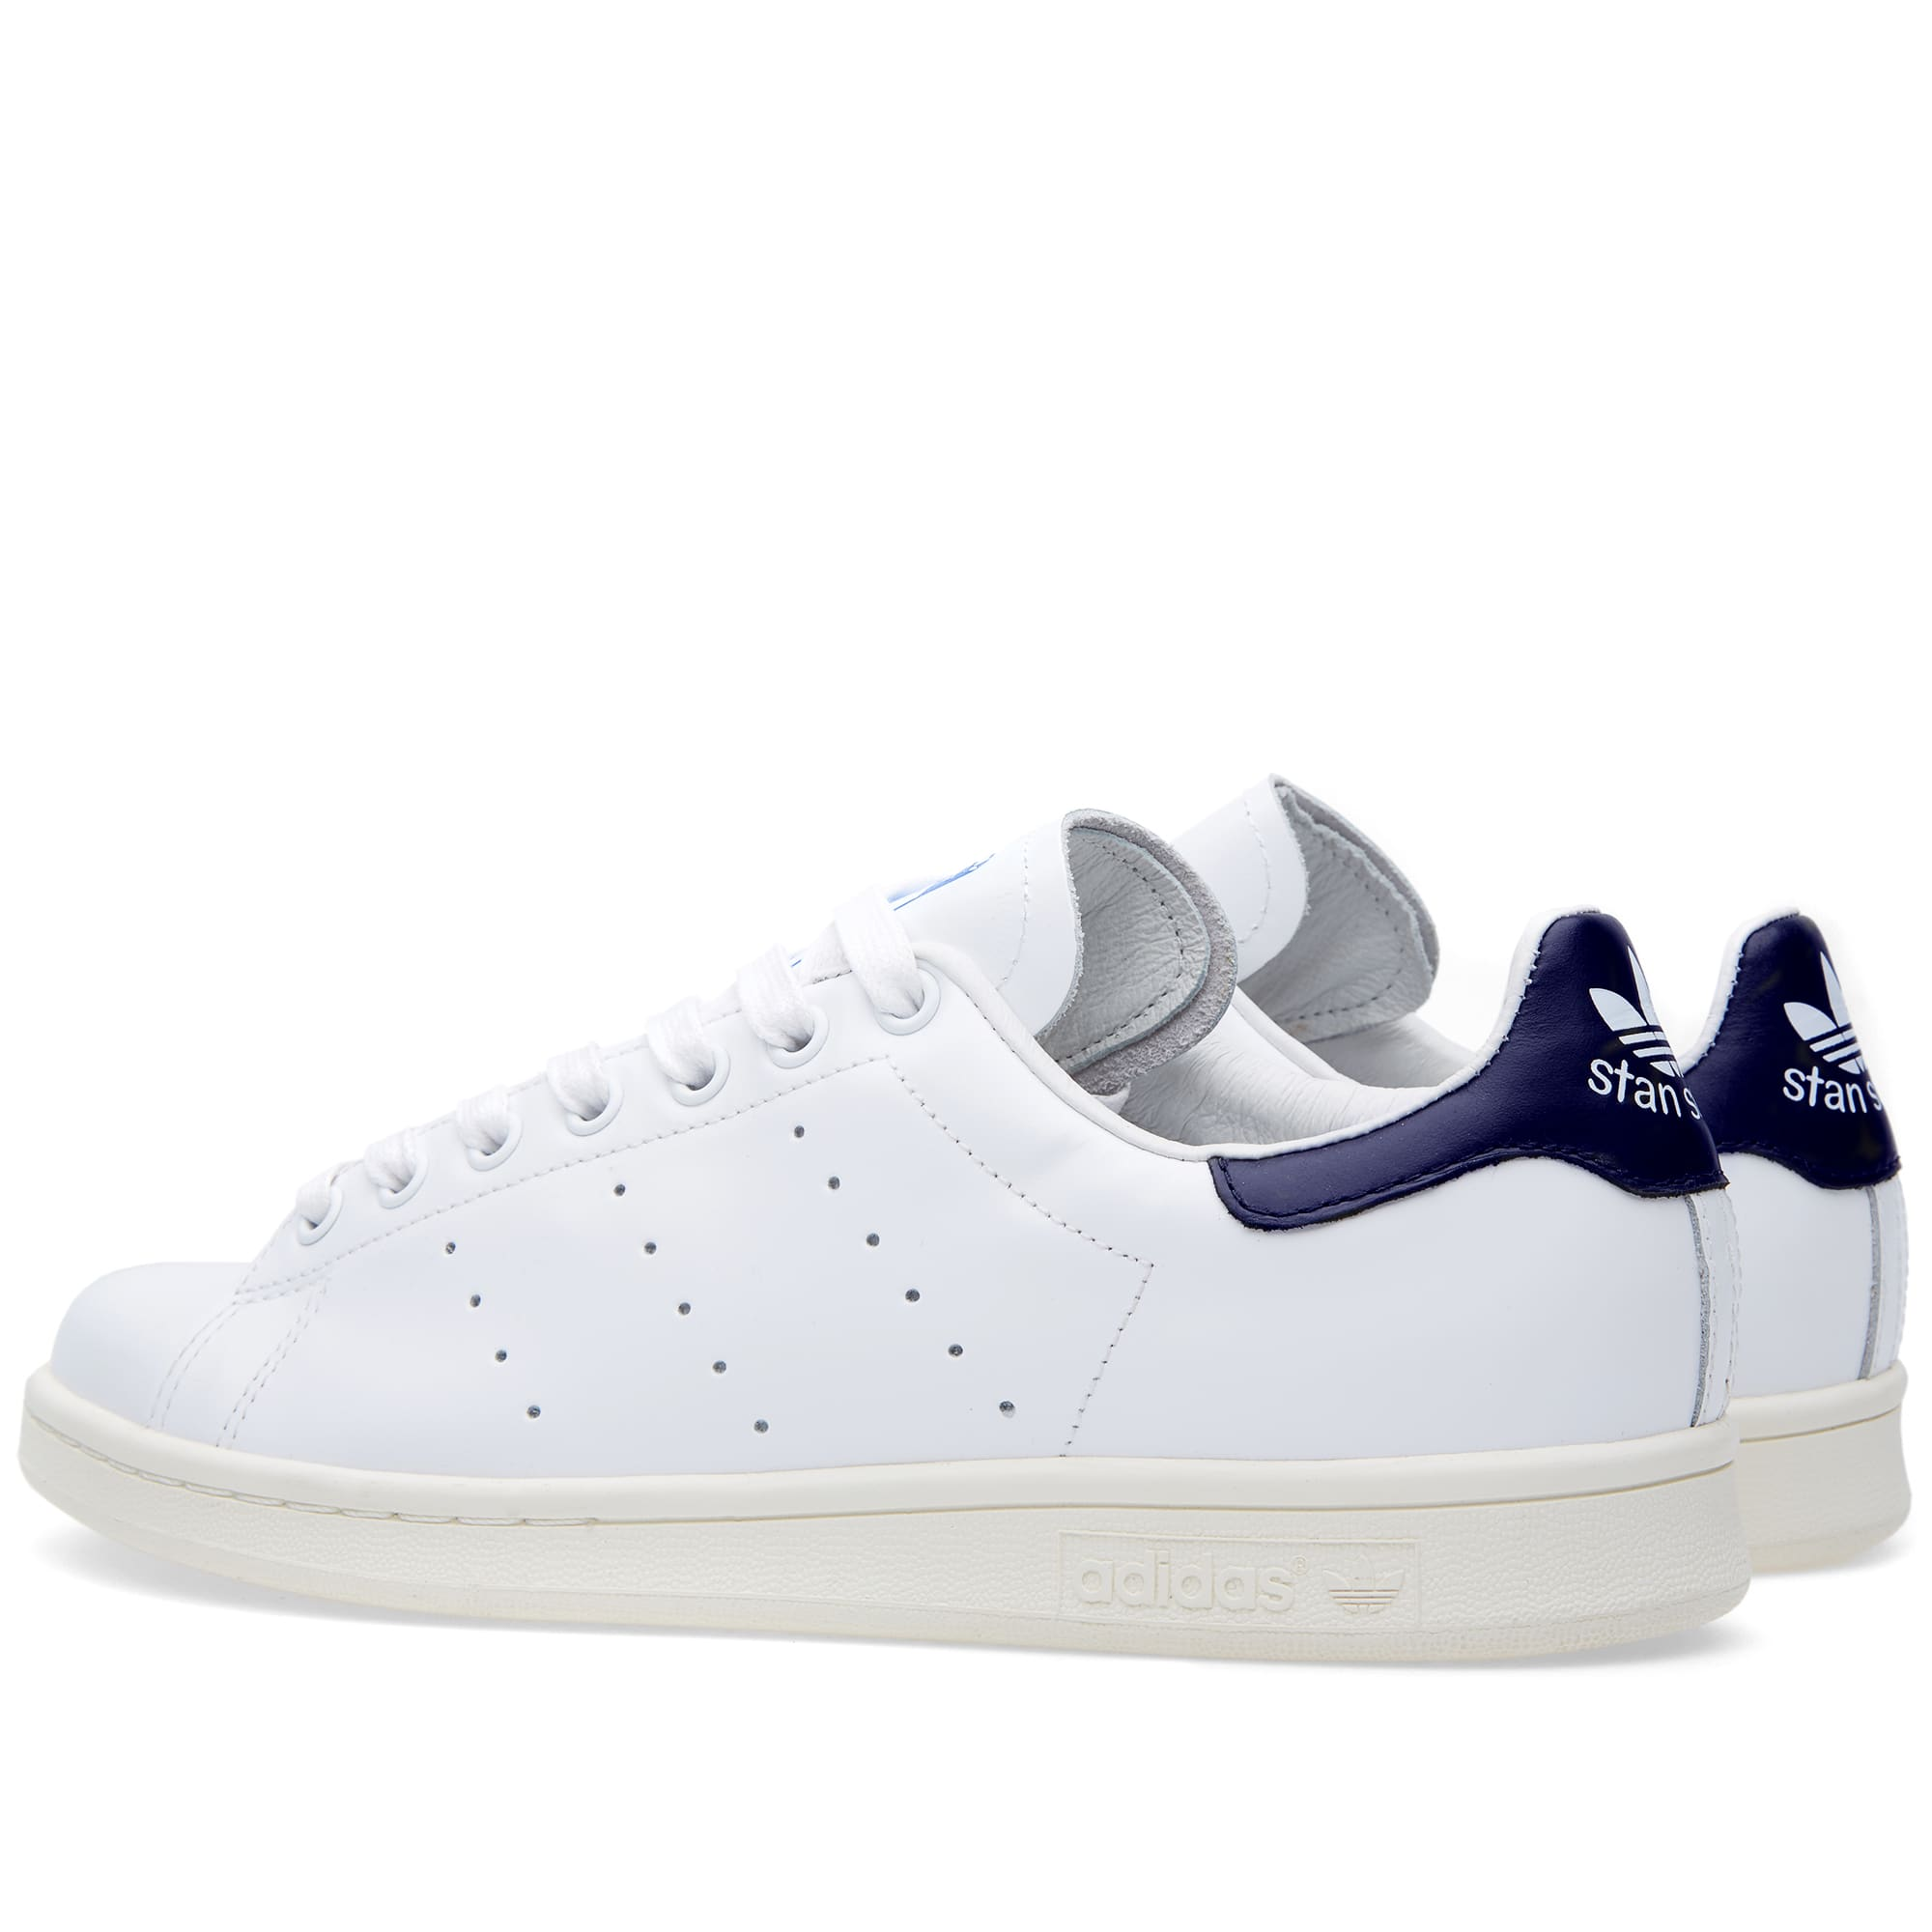 adidas stan smith white collegiate royal. Black Bedroom Furniture Sets. Home Design Ideas